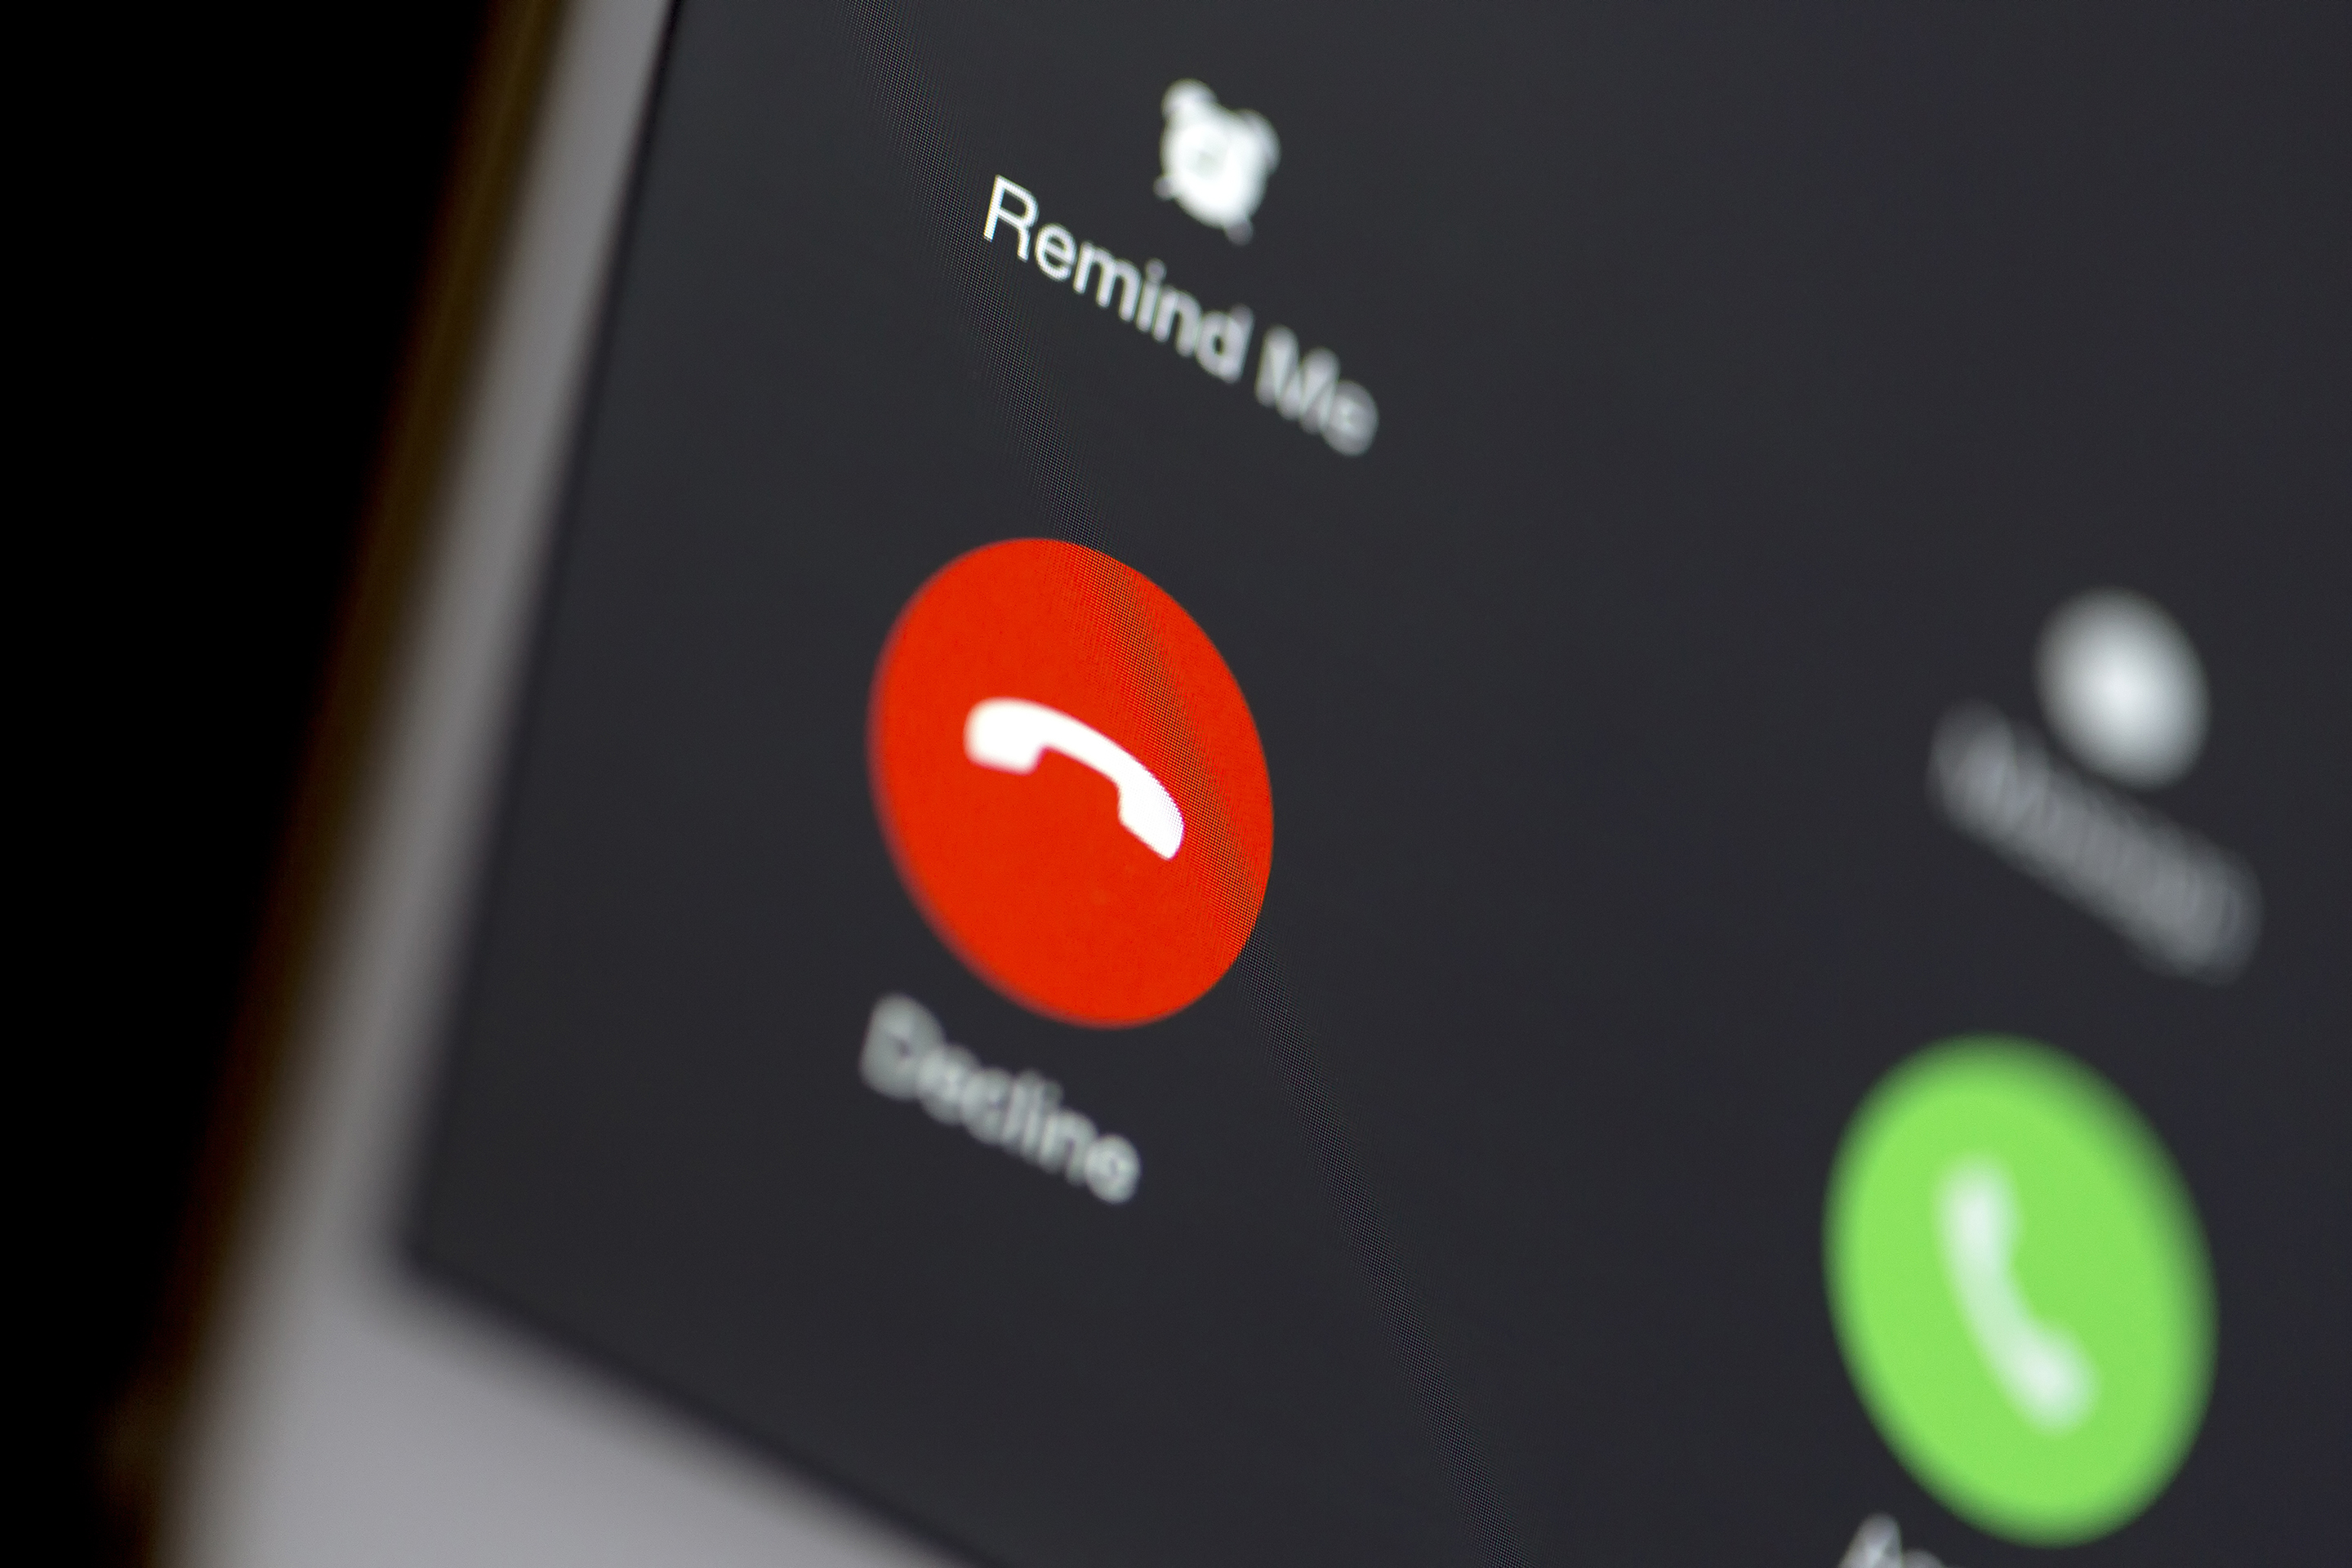 iphone decline phone call scam